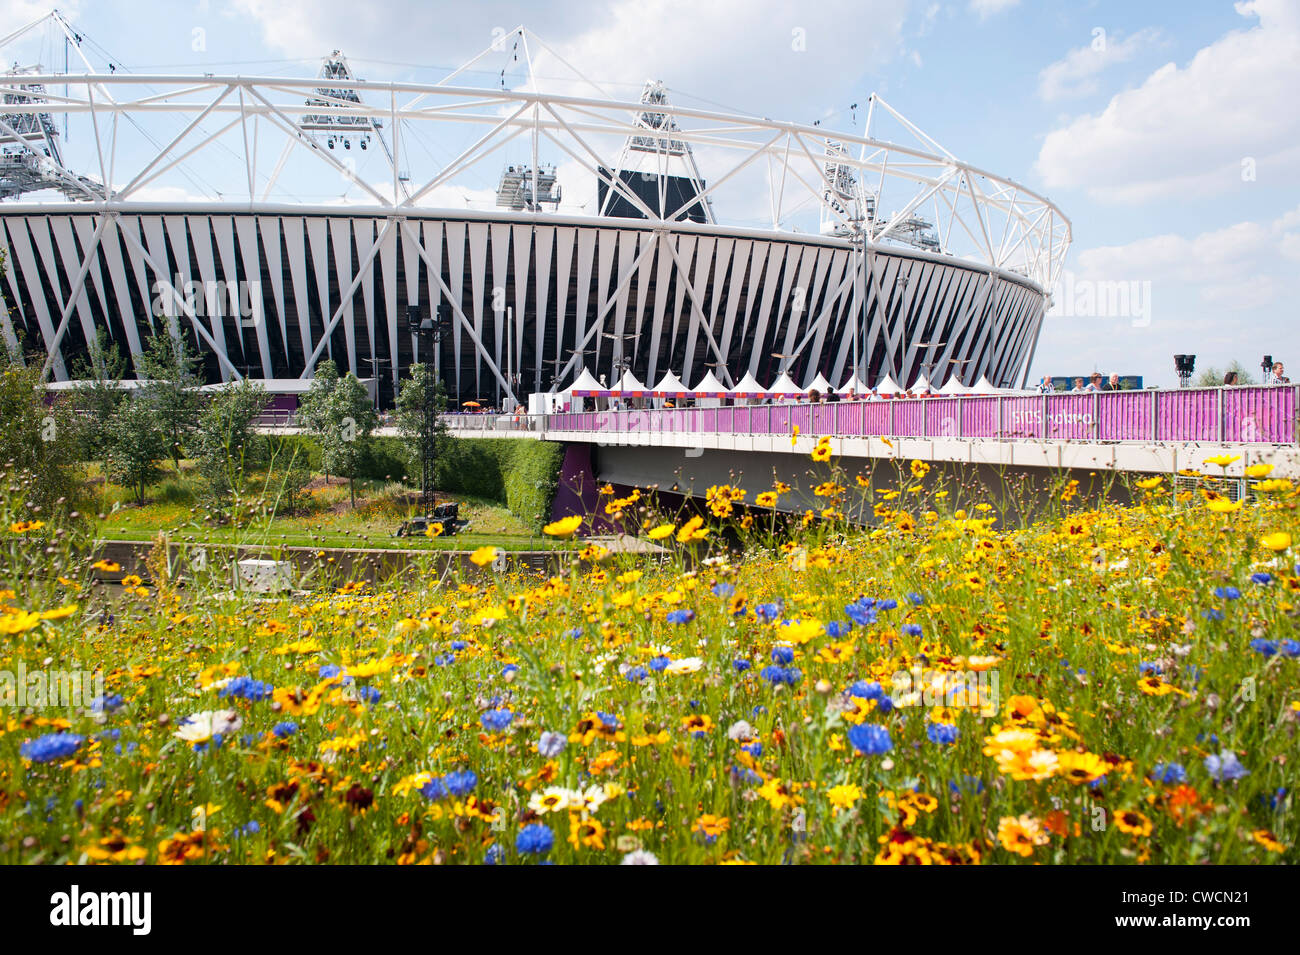 UK London 2012 Stratford Olympic Park Stadium wild English countryside flowers flower bridge over City Mill River - Stock Image